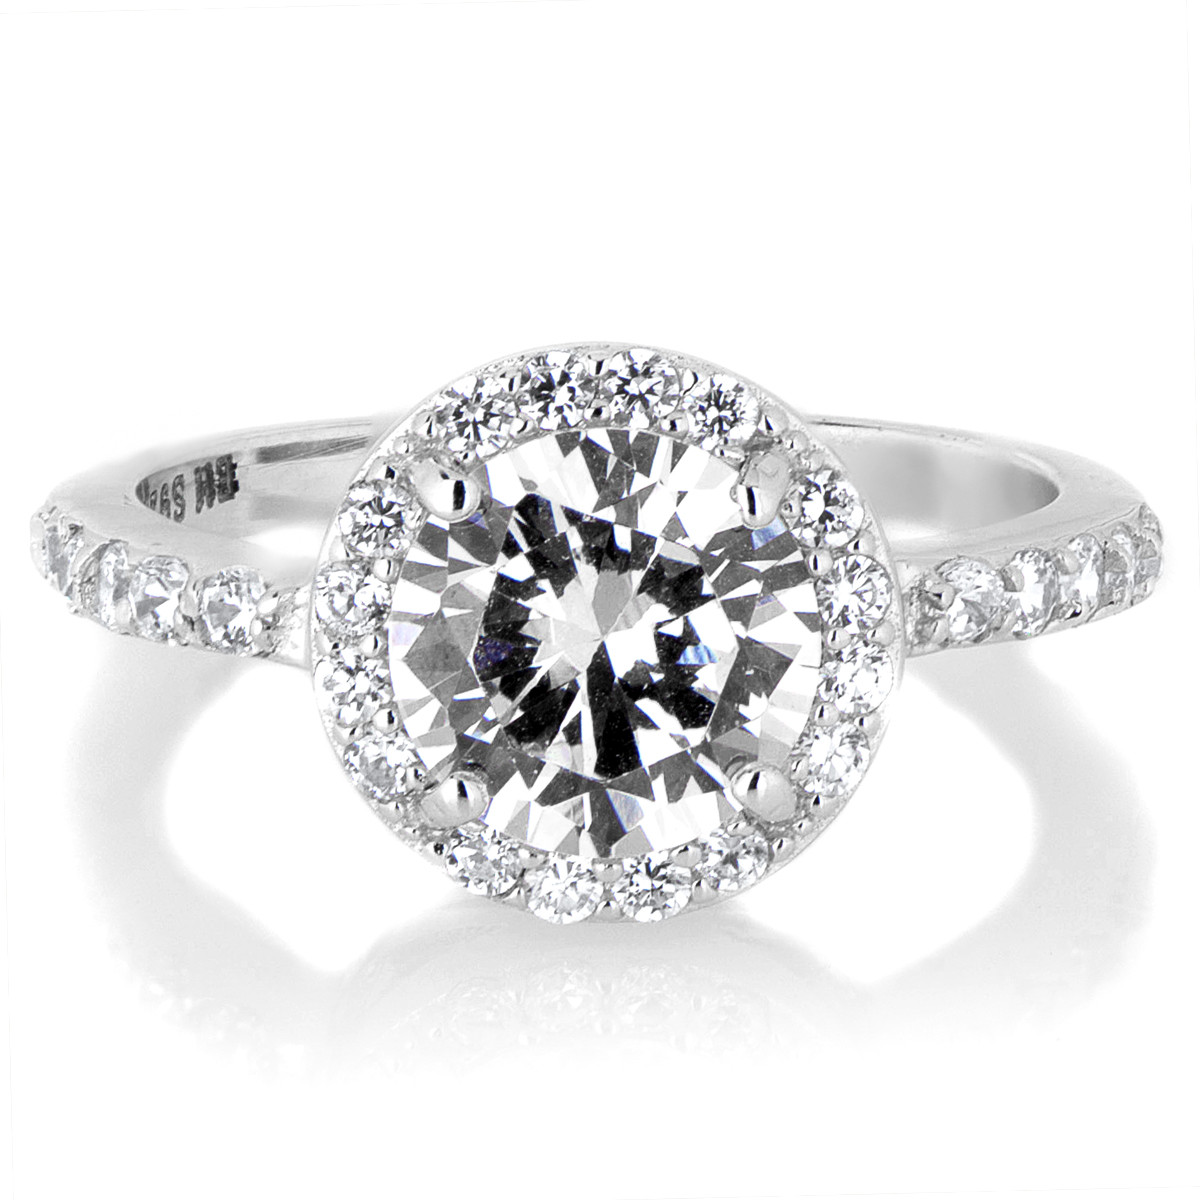 Silvertone April Imitation Birthstone Ring Roll Off Image To Close Zoom  Window